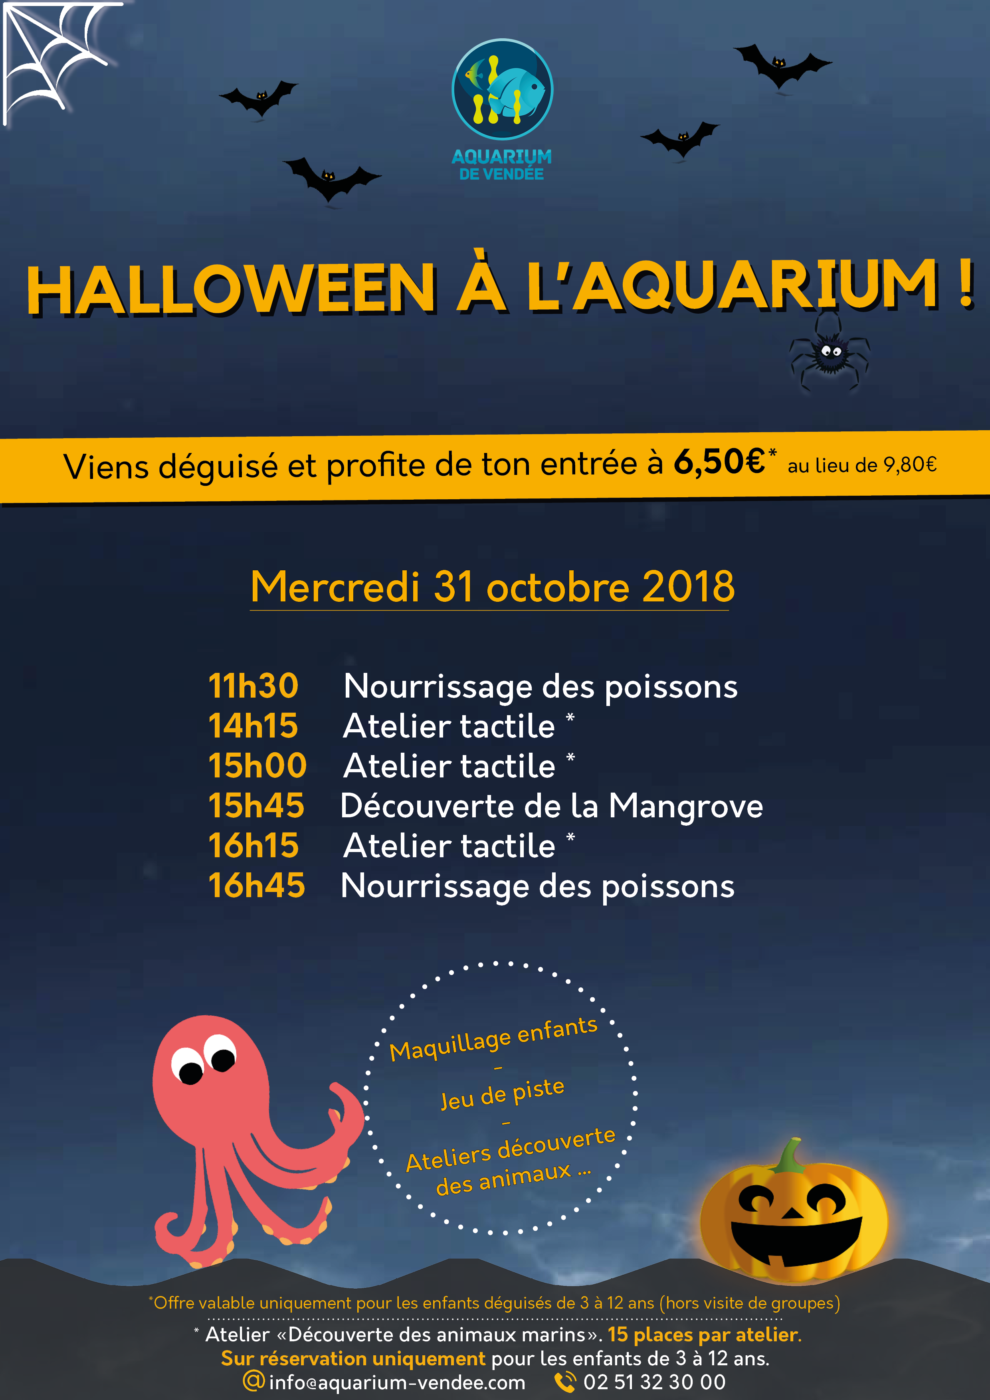 aquarium-talmont-planning-halloween-aquarium-de-vendee